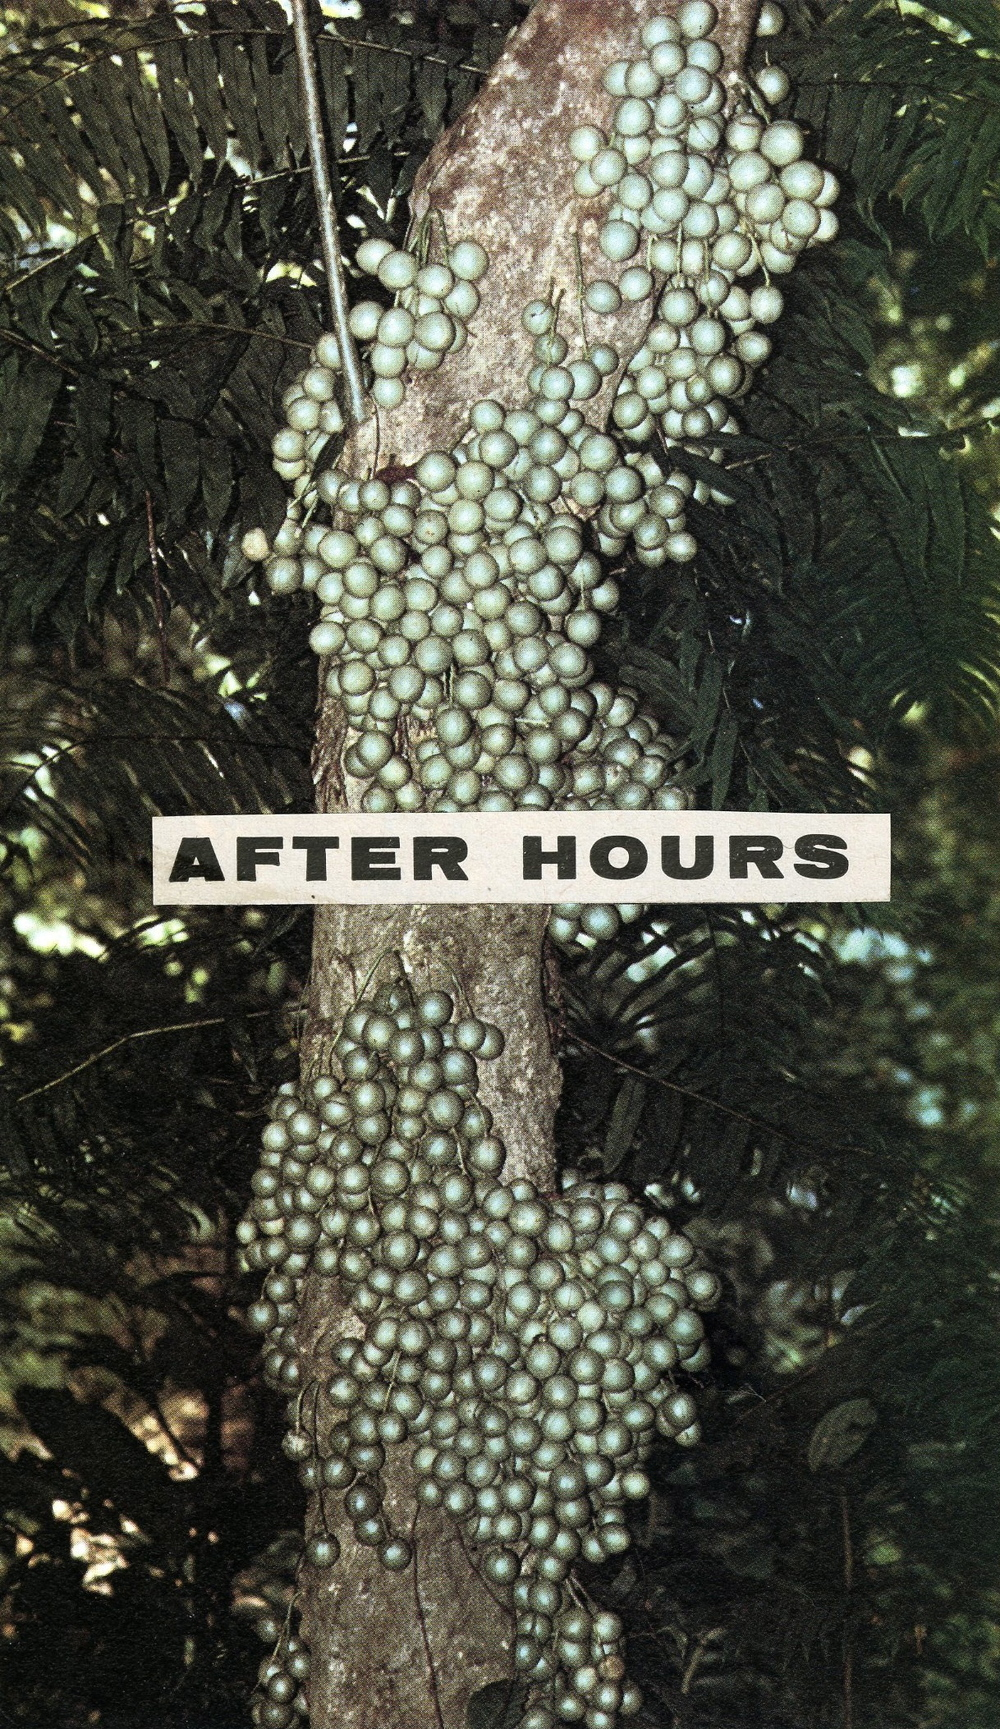 After Hours, 2013.jpg